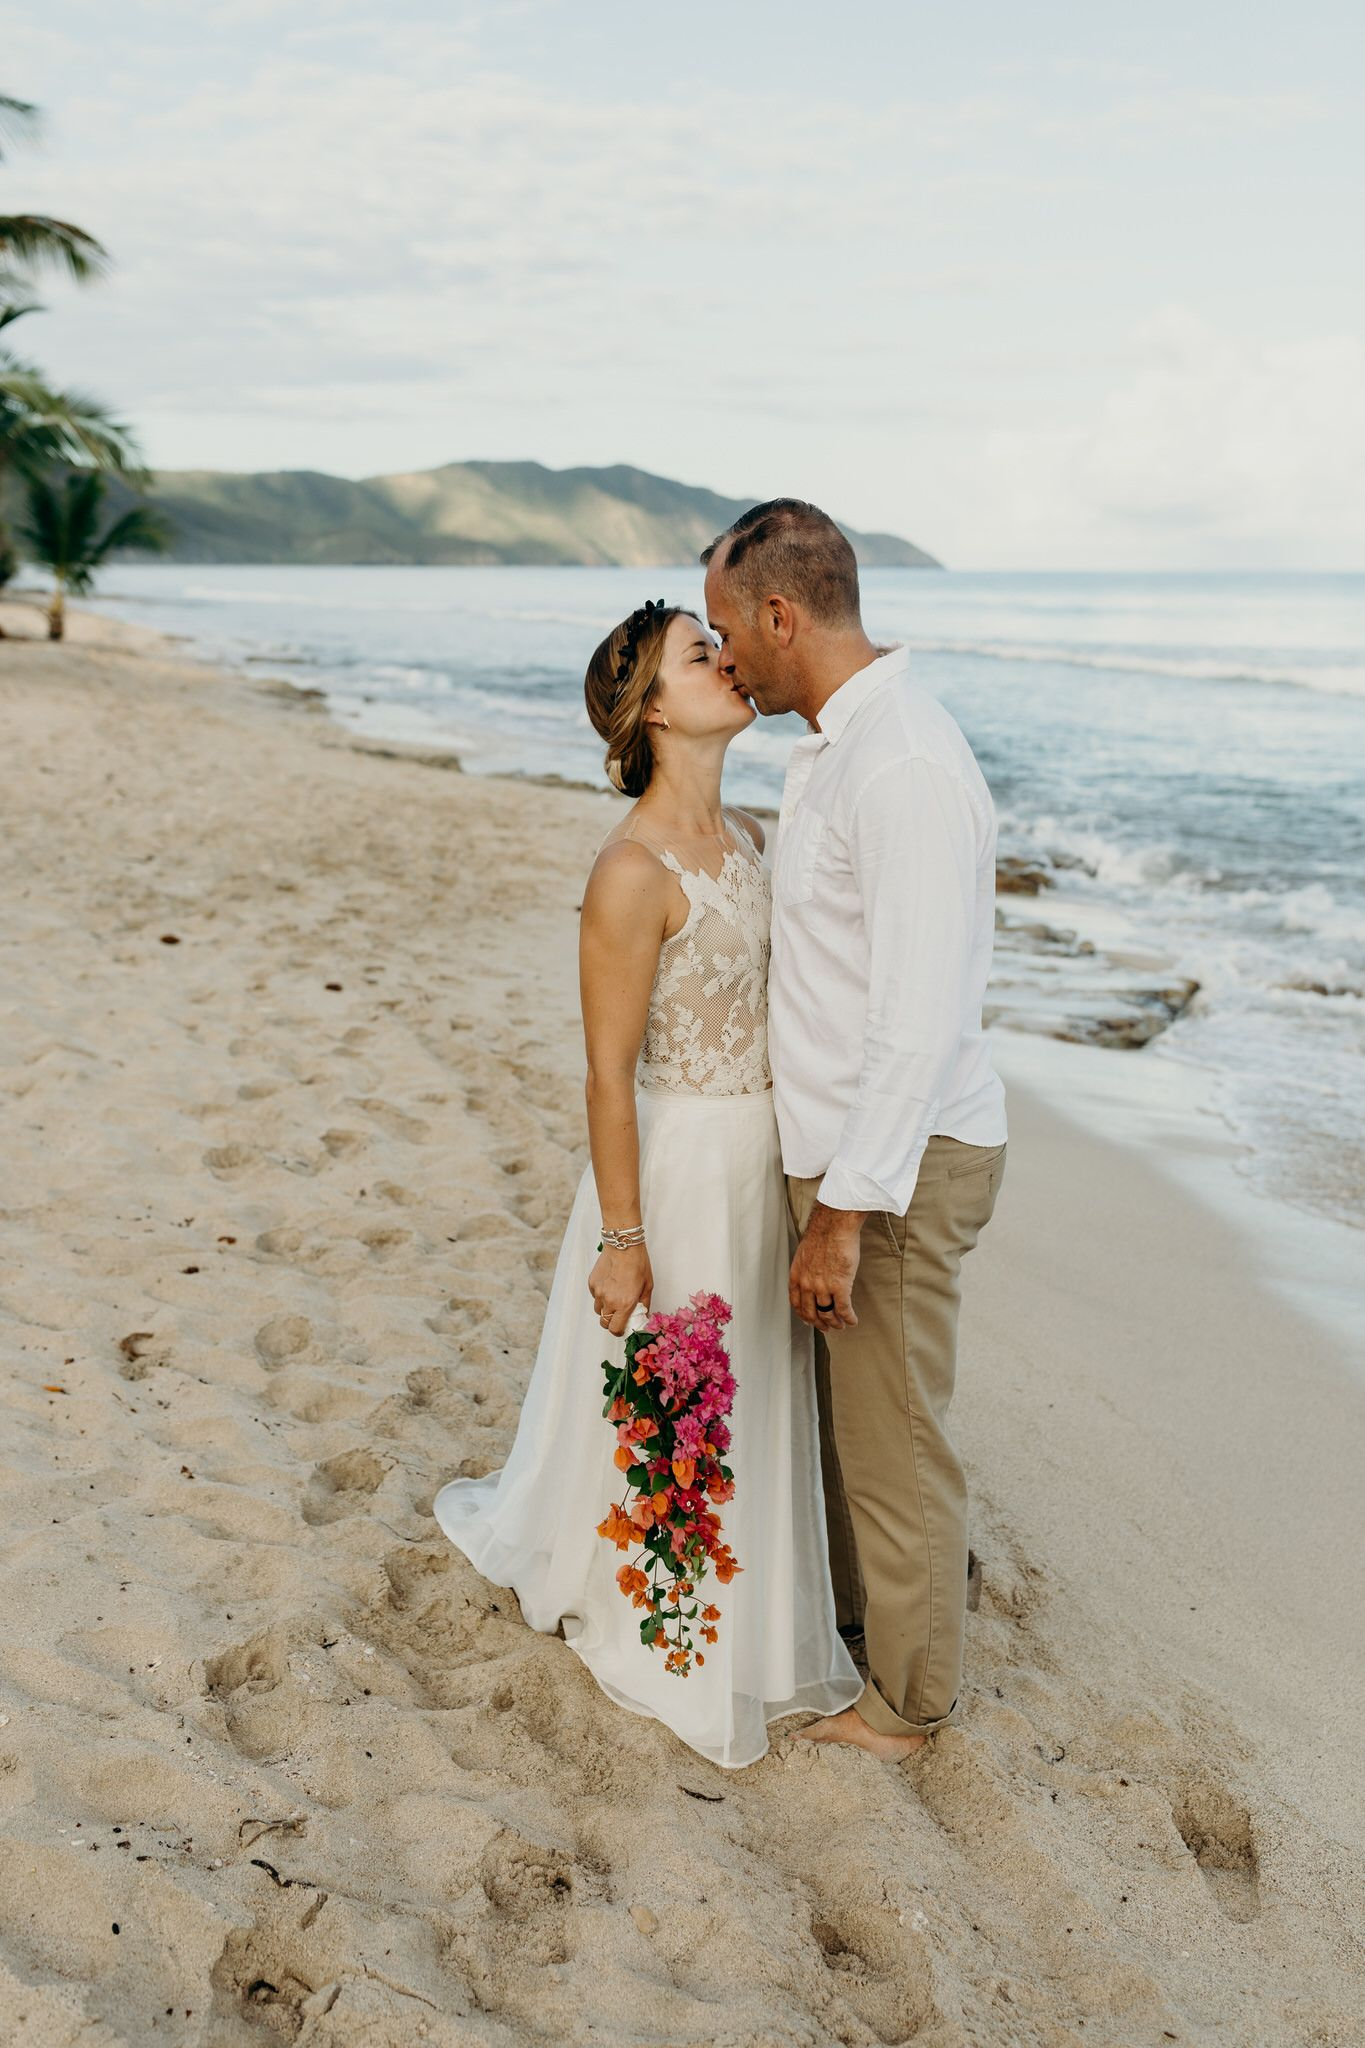 Intimate, Romantic Beach Elopement on St. Croix in the US